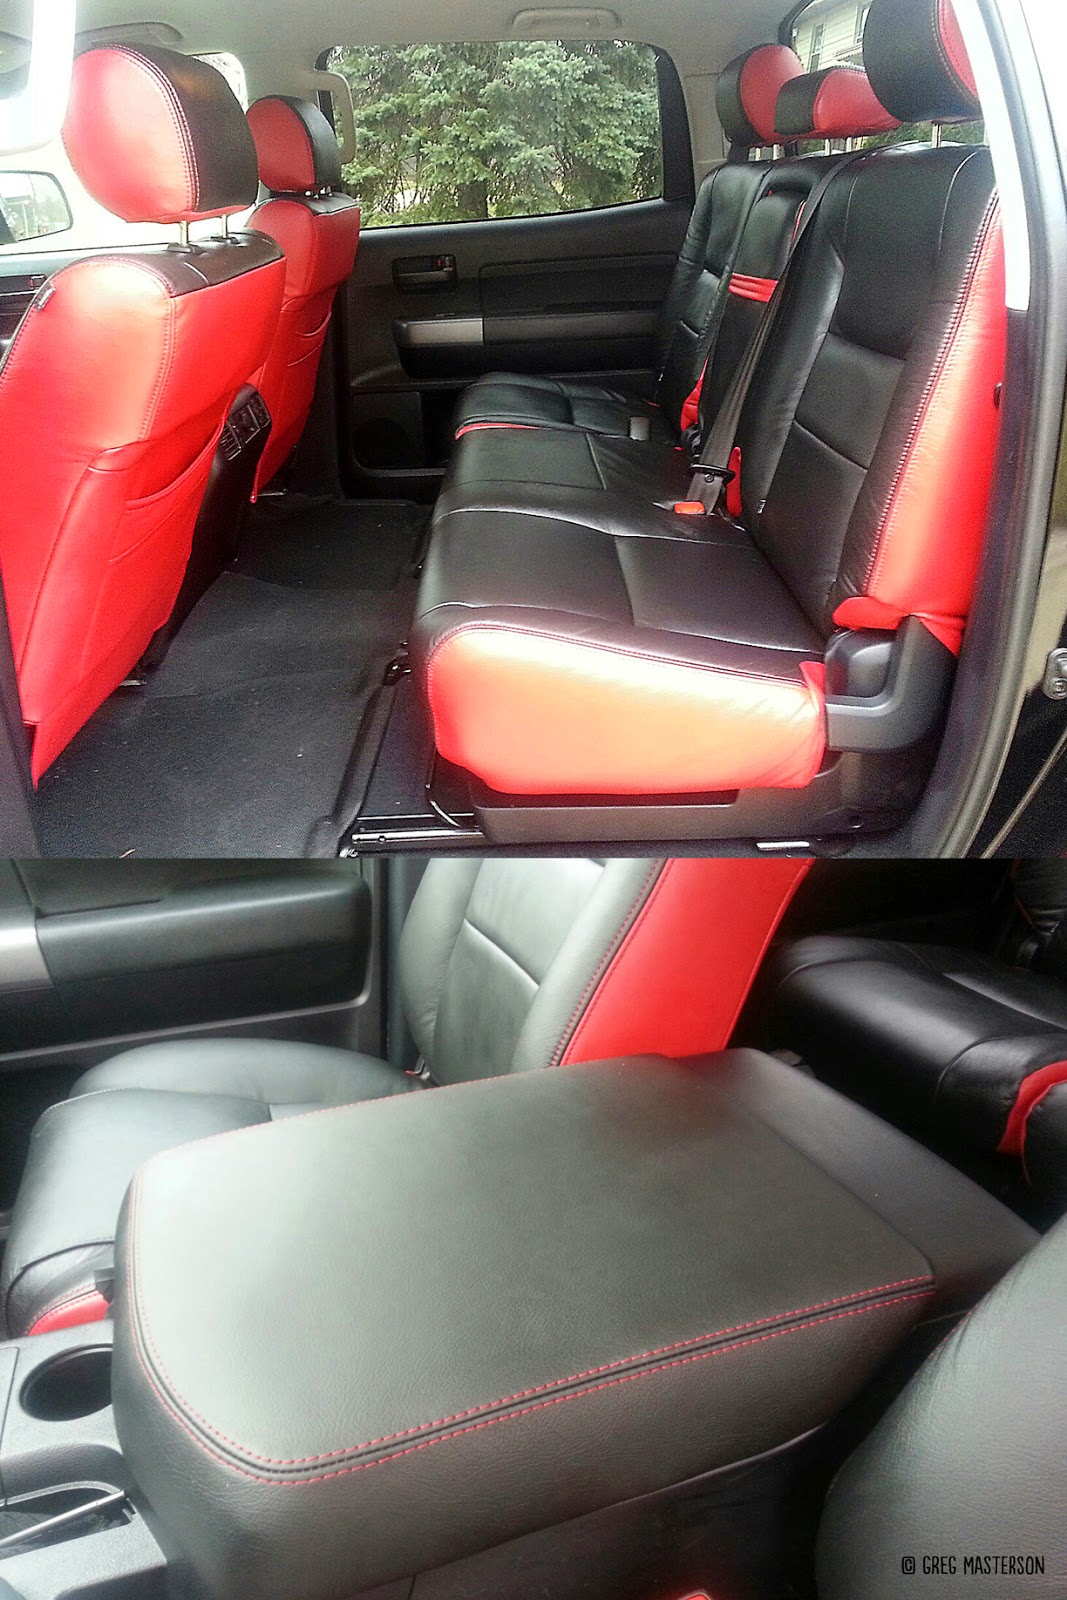 Red and black interior of Toyota Tundra